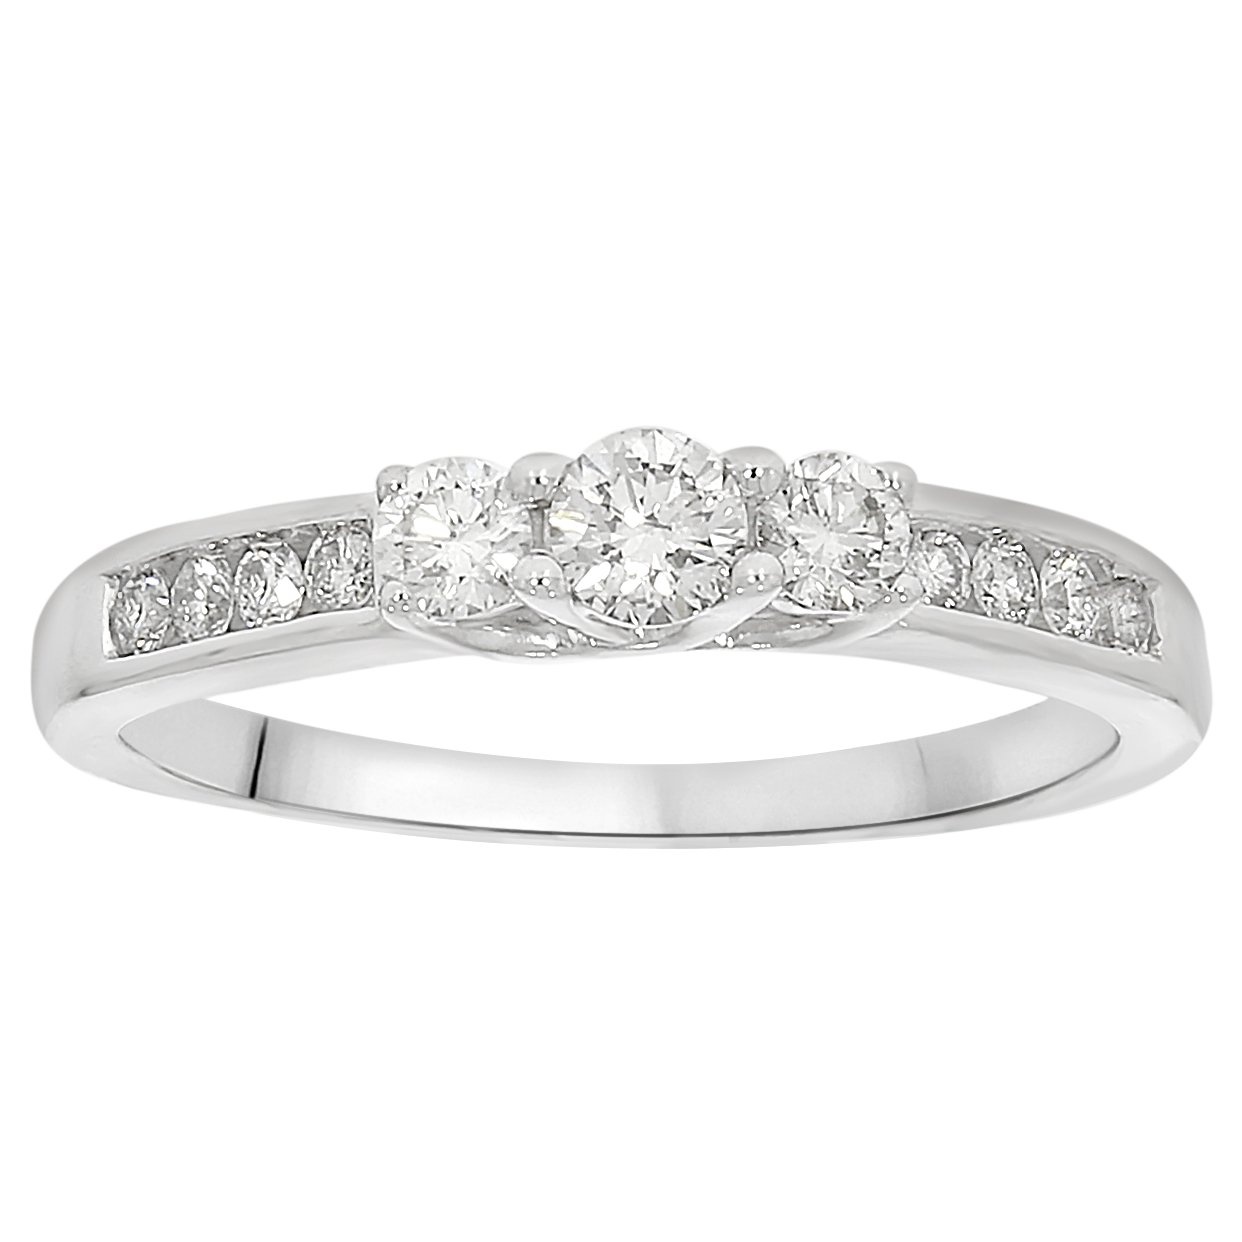 1/2 cttw White Diamond Three-Stone Ladies Engagement Ring in 10k White Gold